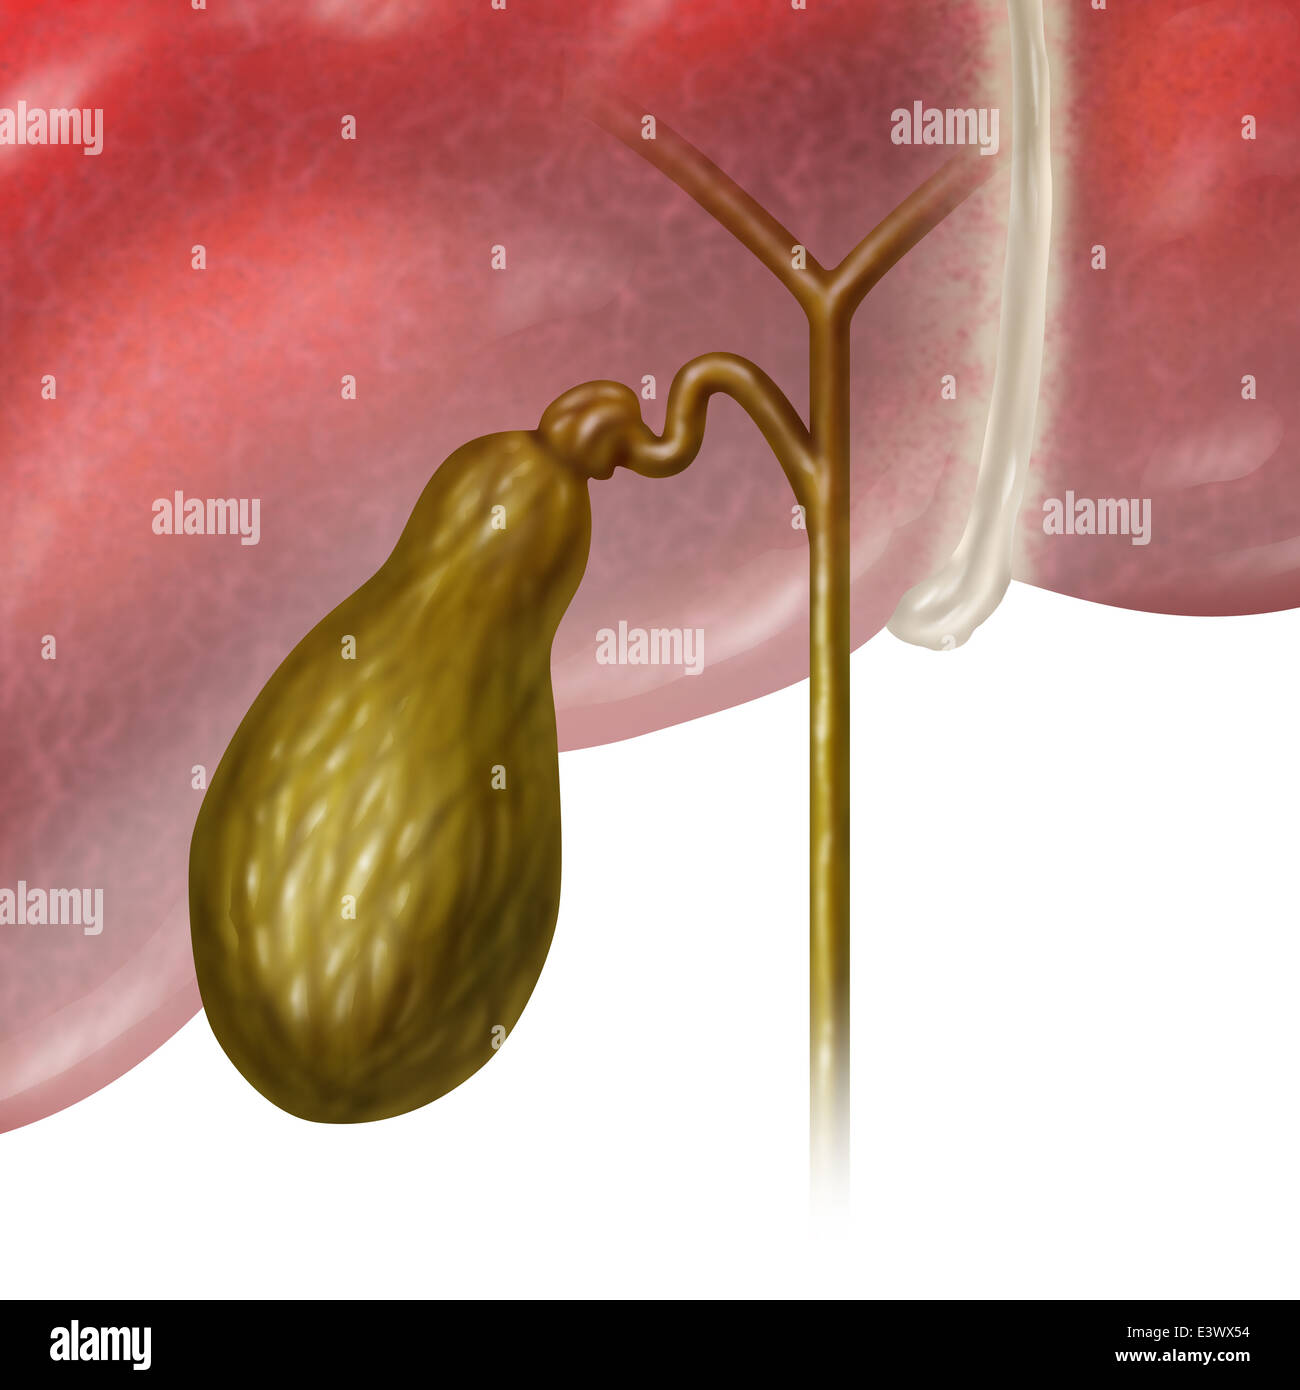 gallbladder or gall bladder human internal organ as a function of, Cephalic Vein